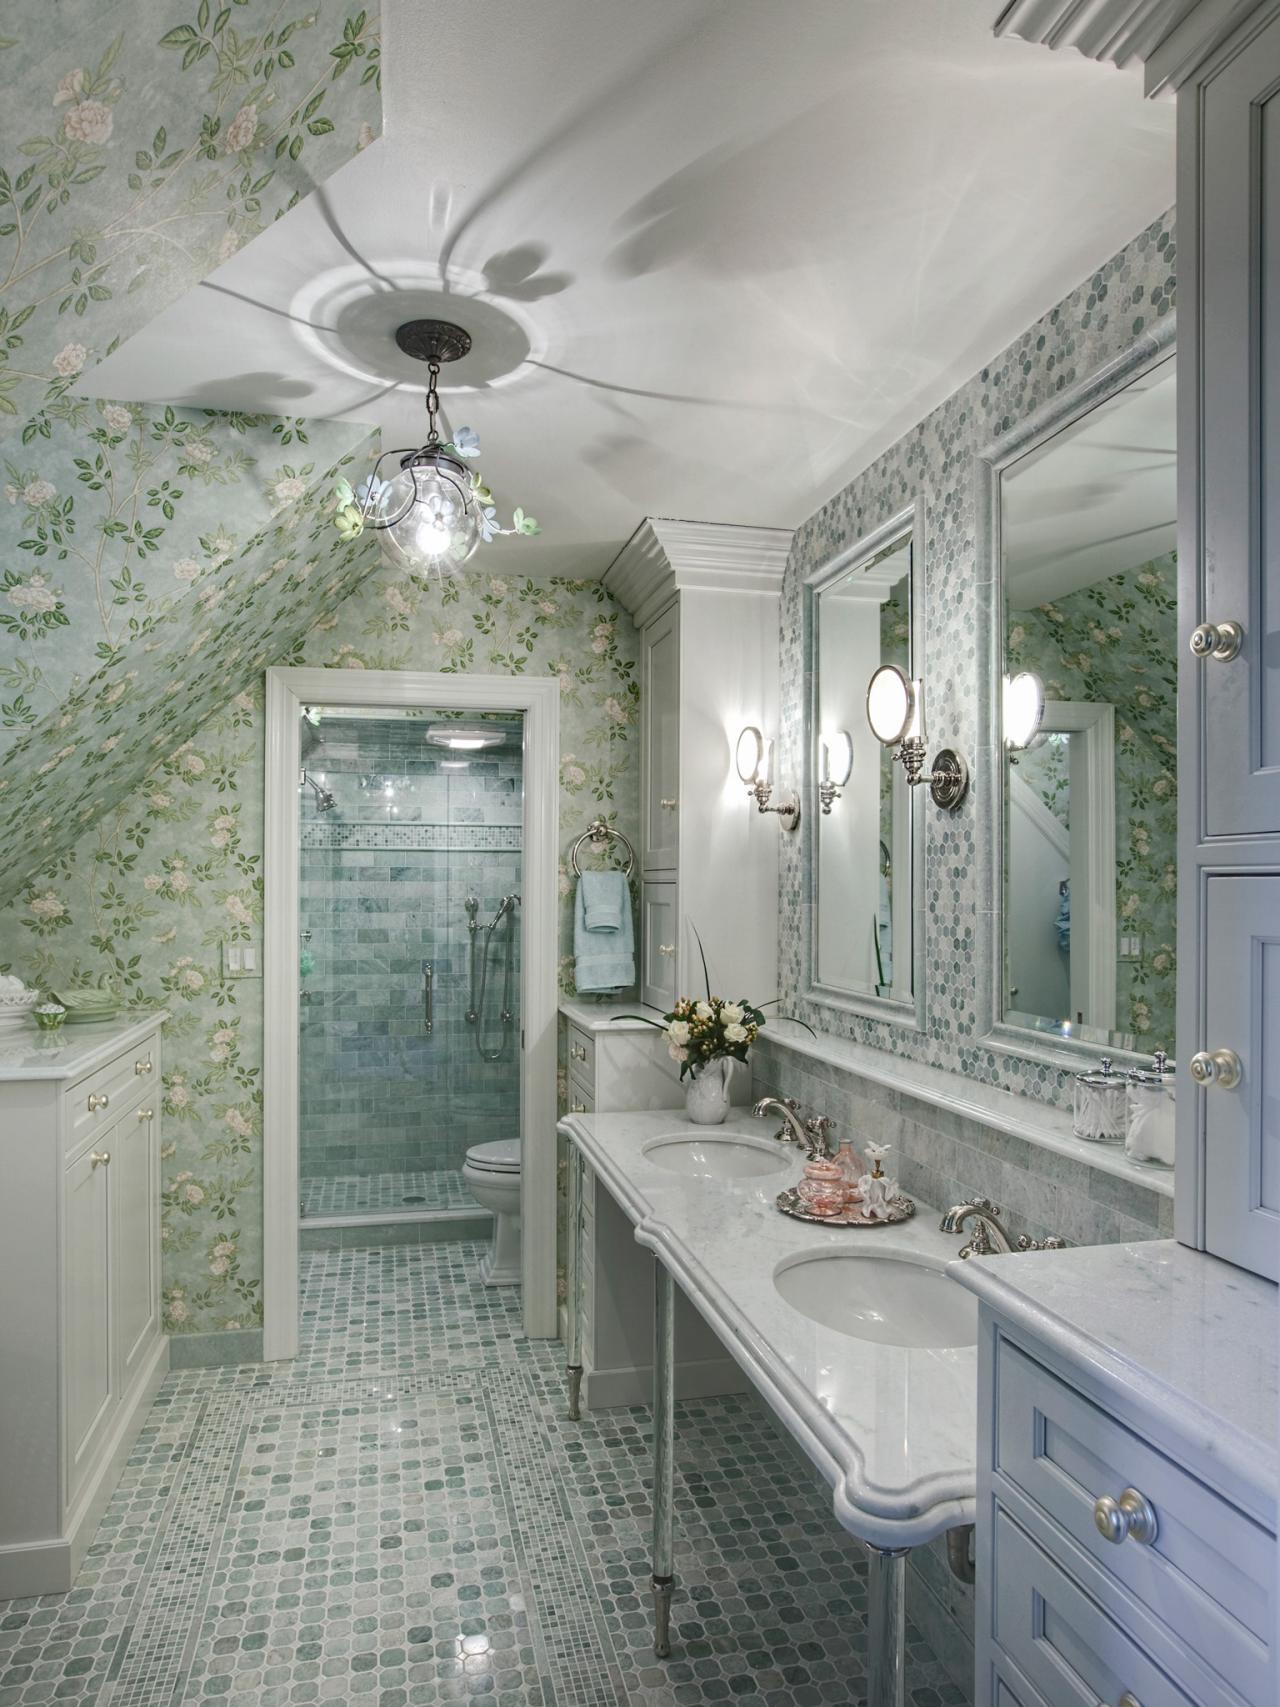 15 Romantic Bathroom Designs Diy Bathroom Ideas Vanities Cabinets Mirrors More Diy